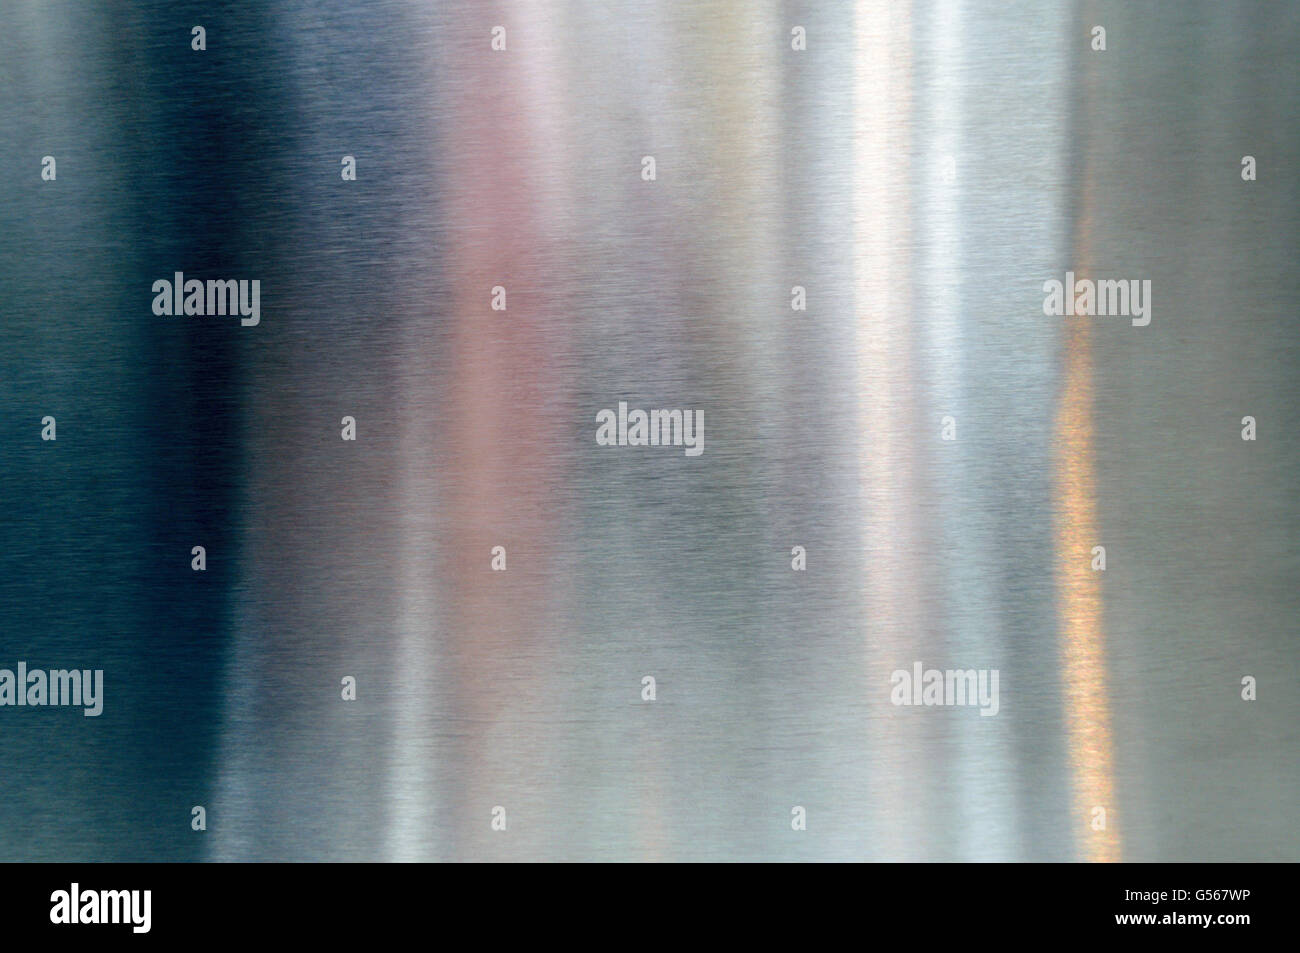 Convex polished shiny steel metal surface with multicolored reflections and glare - Stock Image